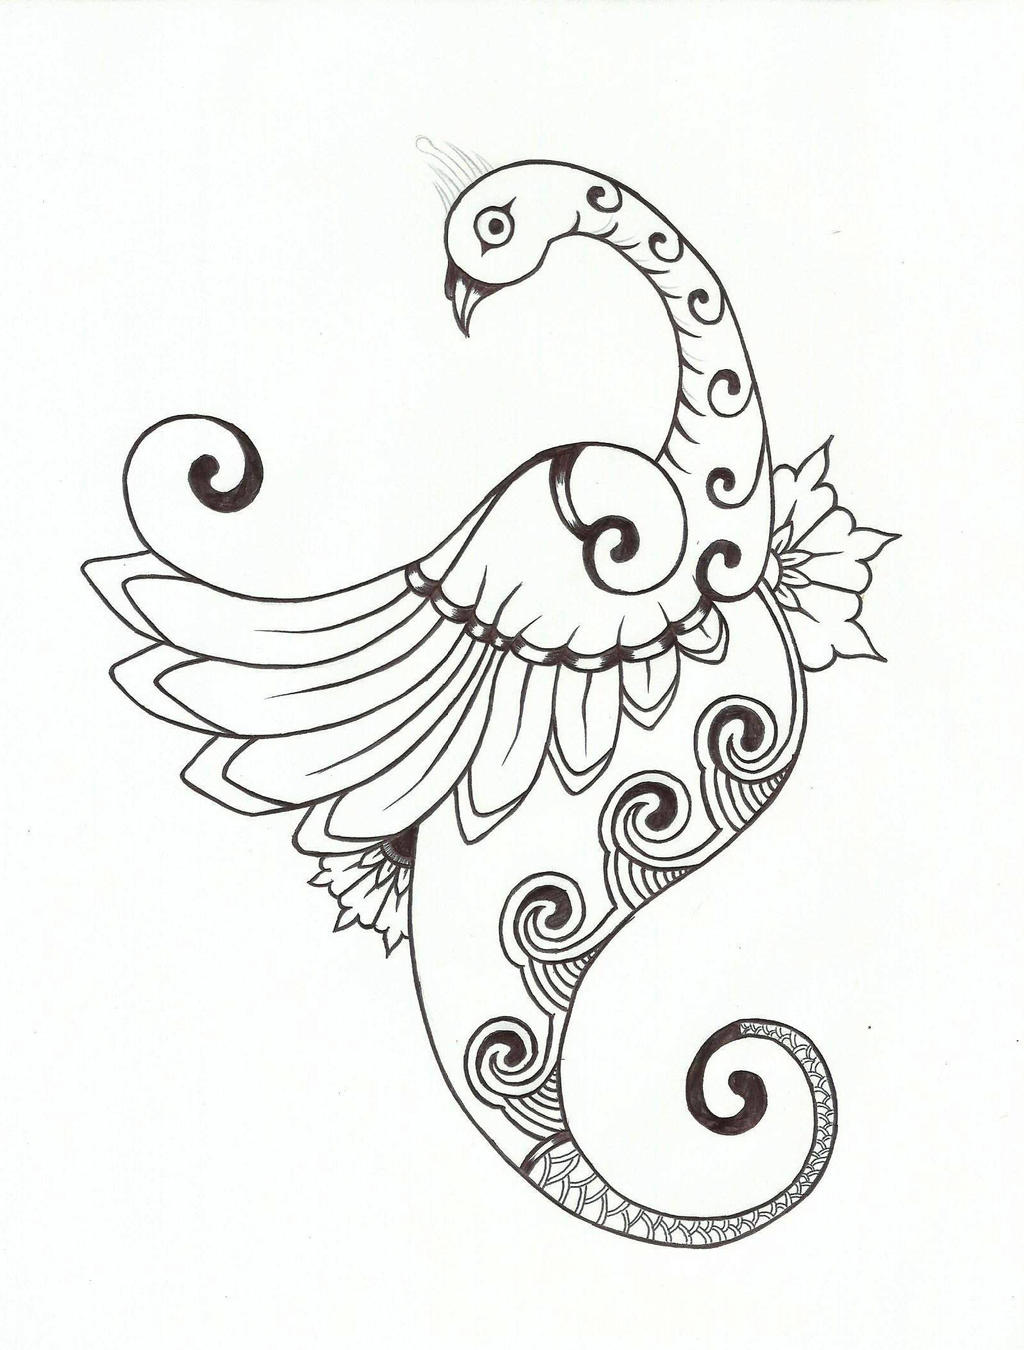 Henna Design Line Art : Mehndi type peacock design by chrismetalfreak on deviantart